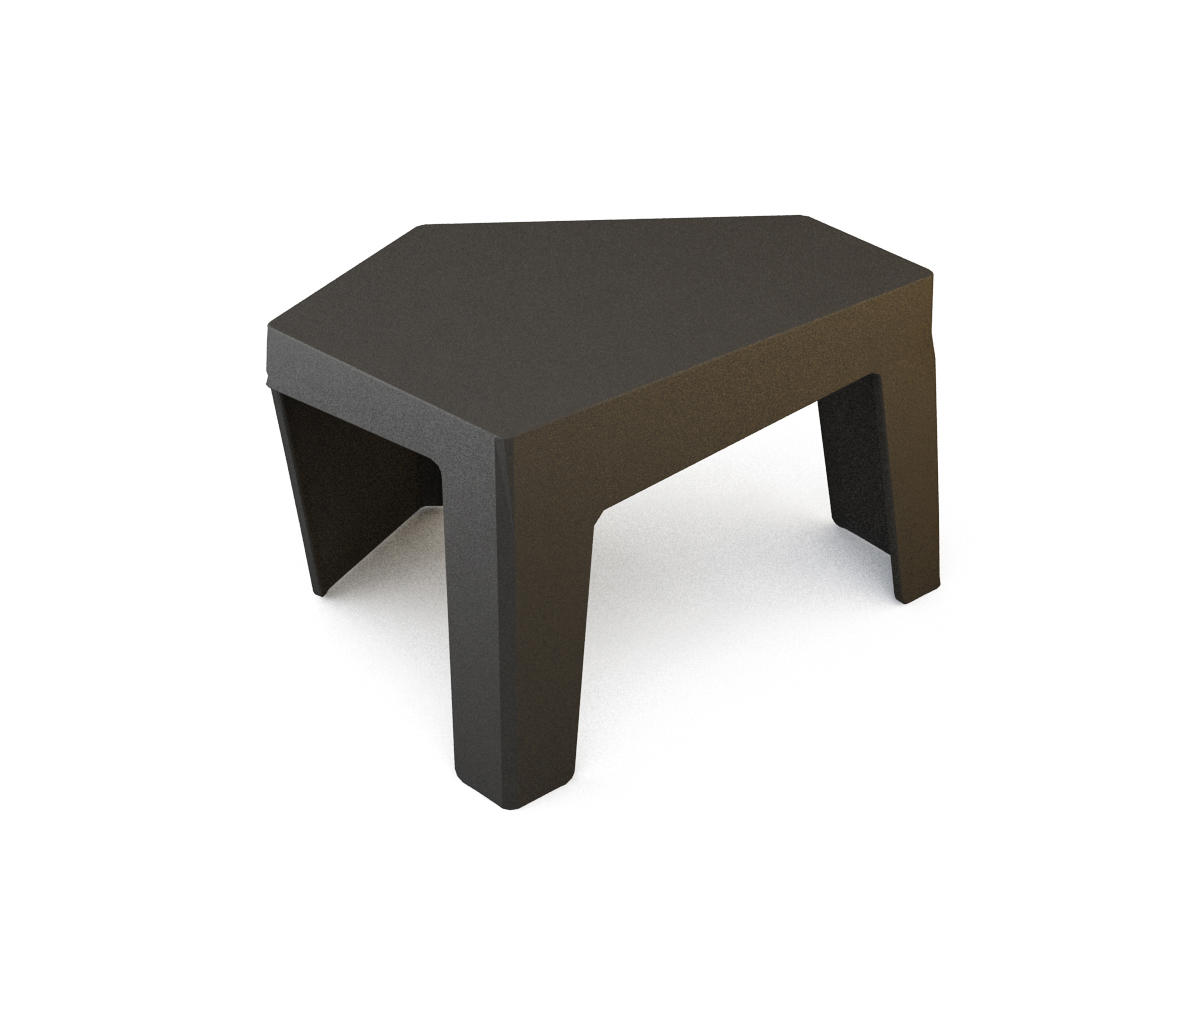 Maze side table high side tables from quinze milan for High side table